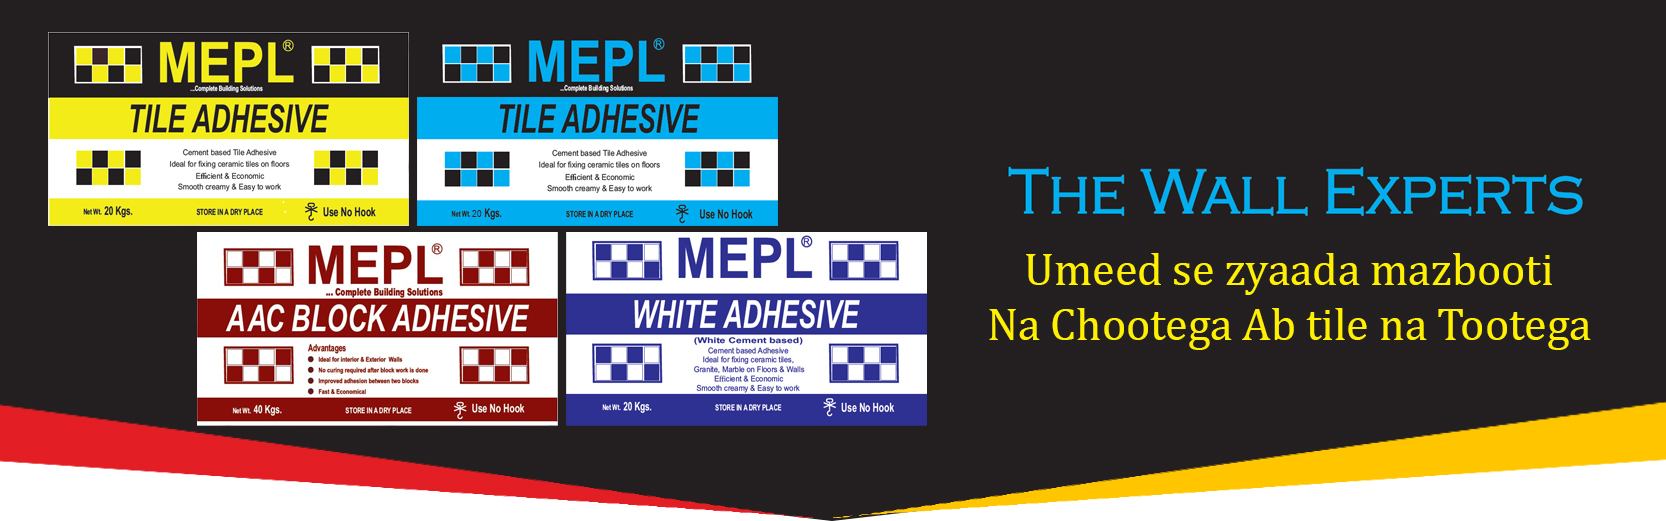 MEPL Construction Chemicals and Paints